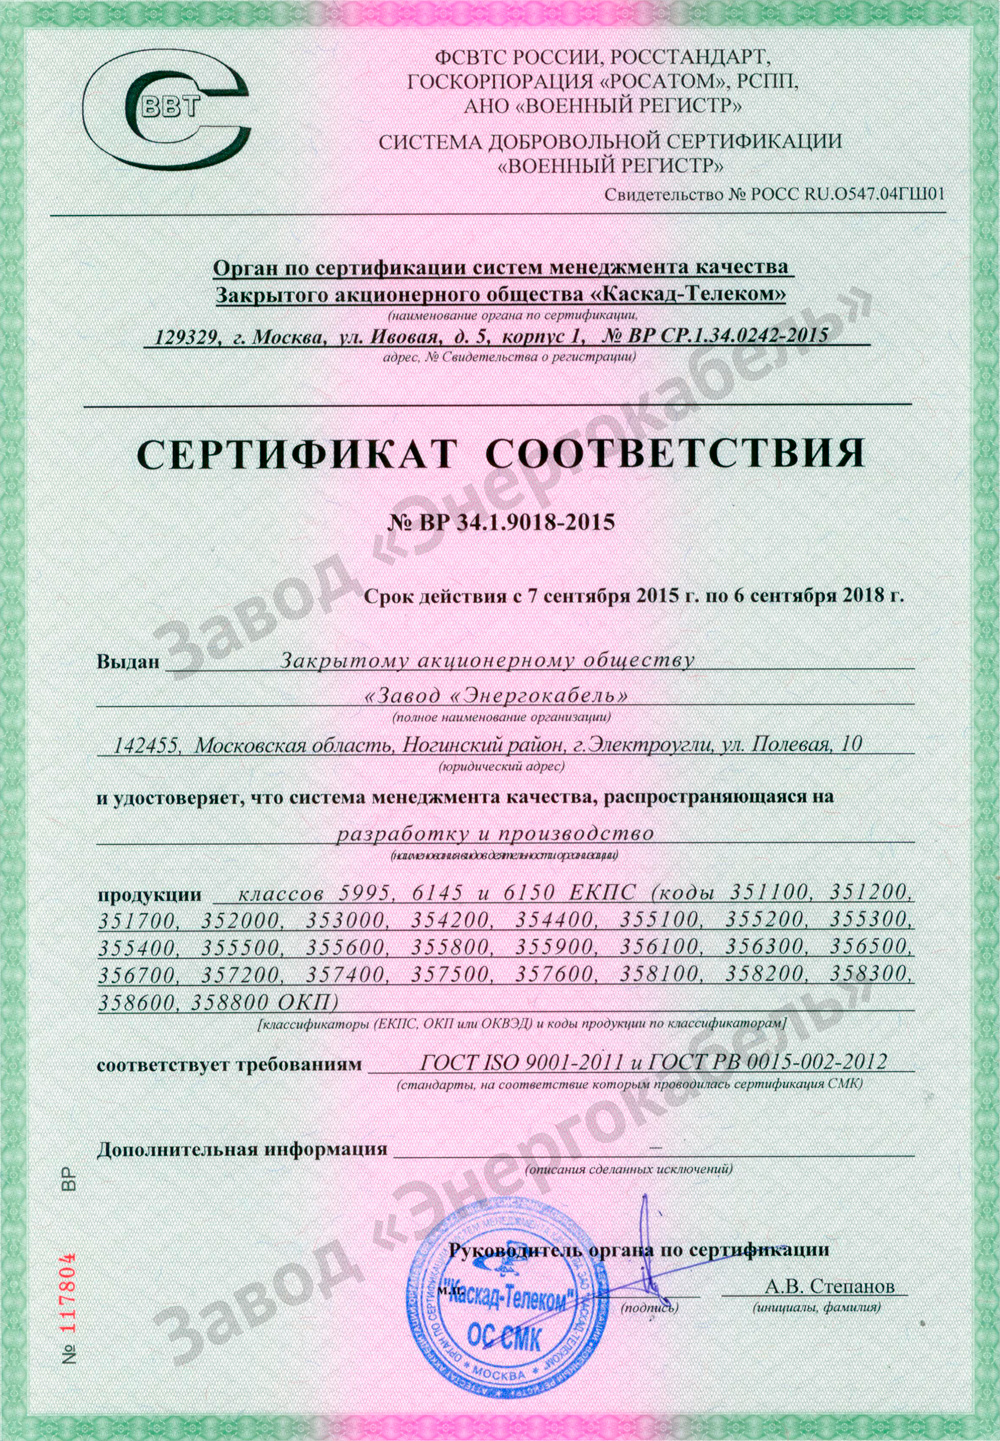 The certificate of conformity of GOST R ISO 9001-2011 (development and production) and GOST RV 15.002-2012(manufacturing)